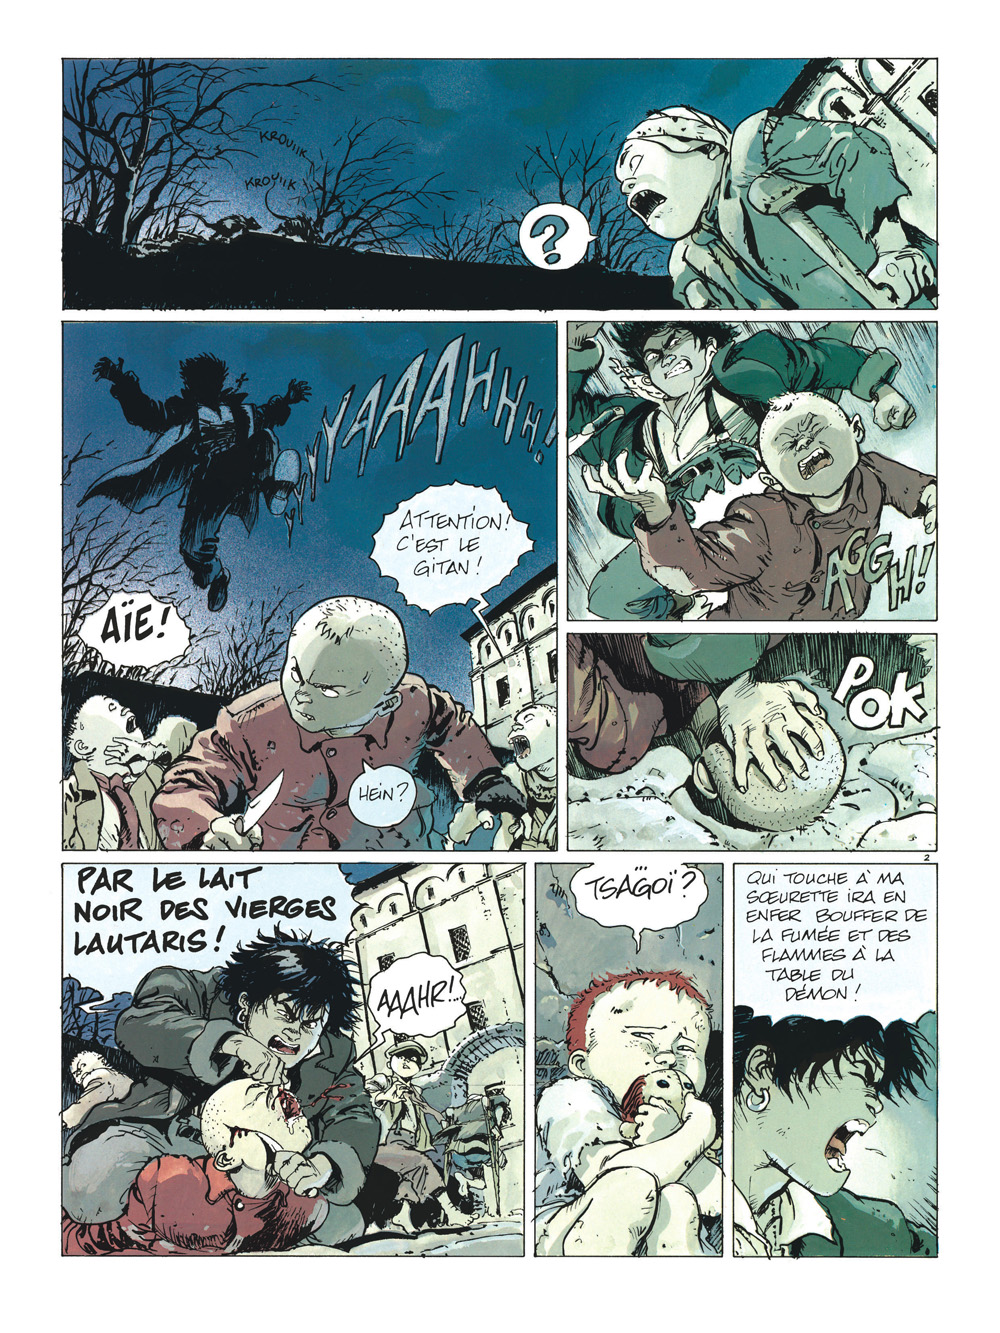 gipsy intégrale planche 2